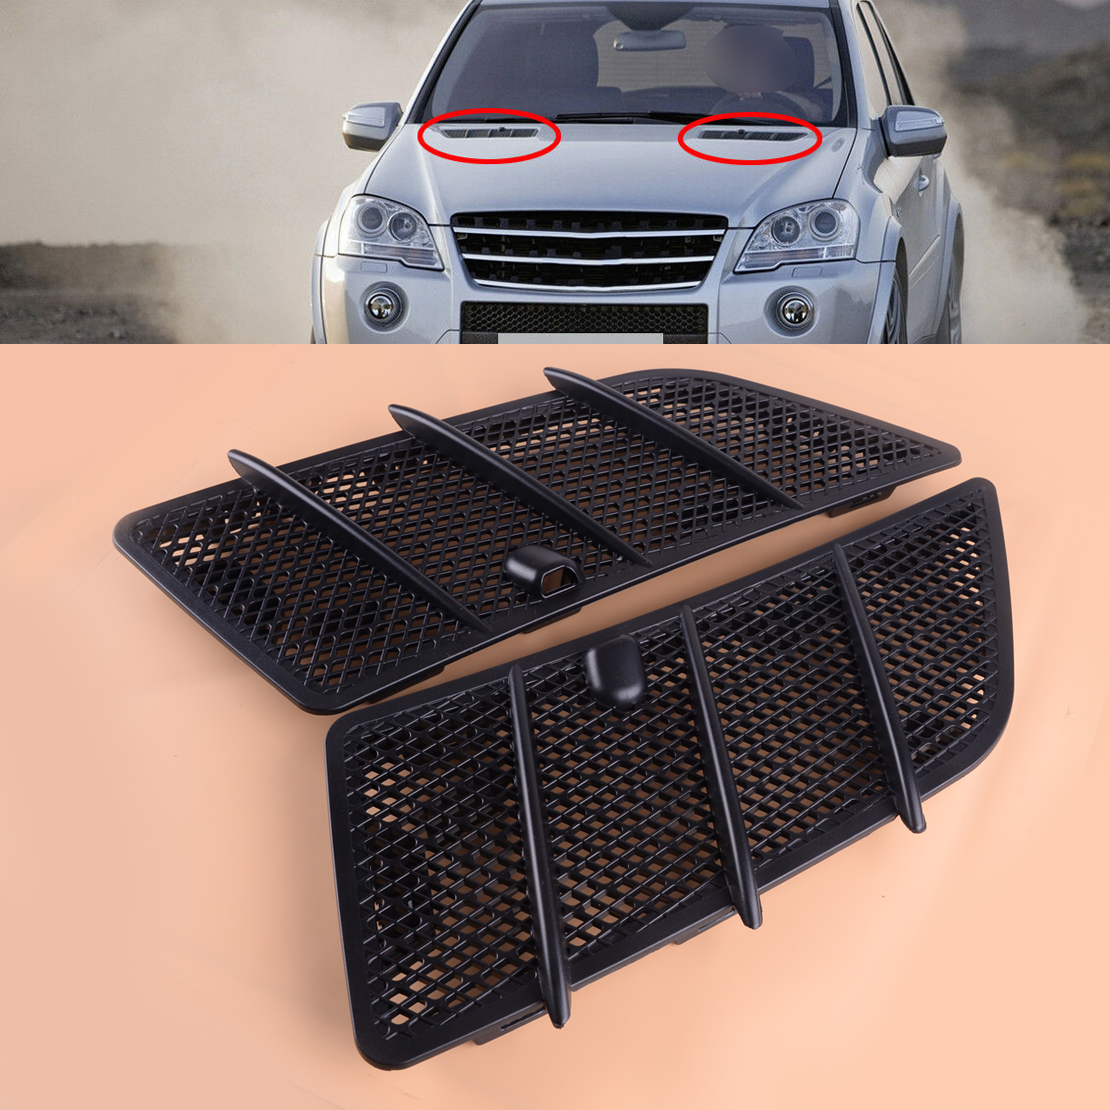 Car Pair Right & Left Front Bonnet Hood Air Vent Grille Mesh w/ Washer Nozzle Cover fit for Mercedes W164 ML350 ML550 2008-2011